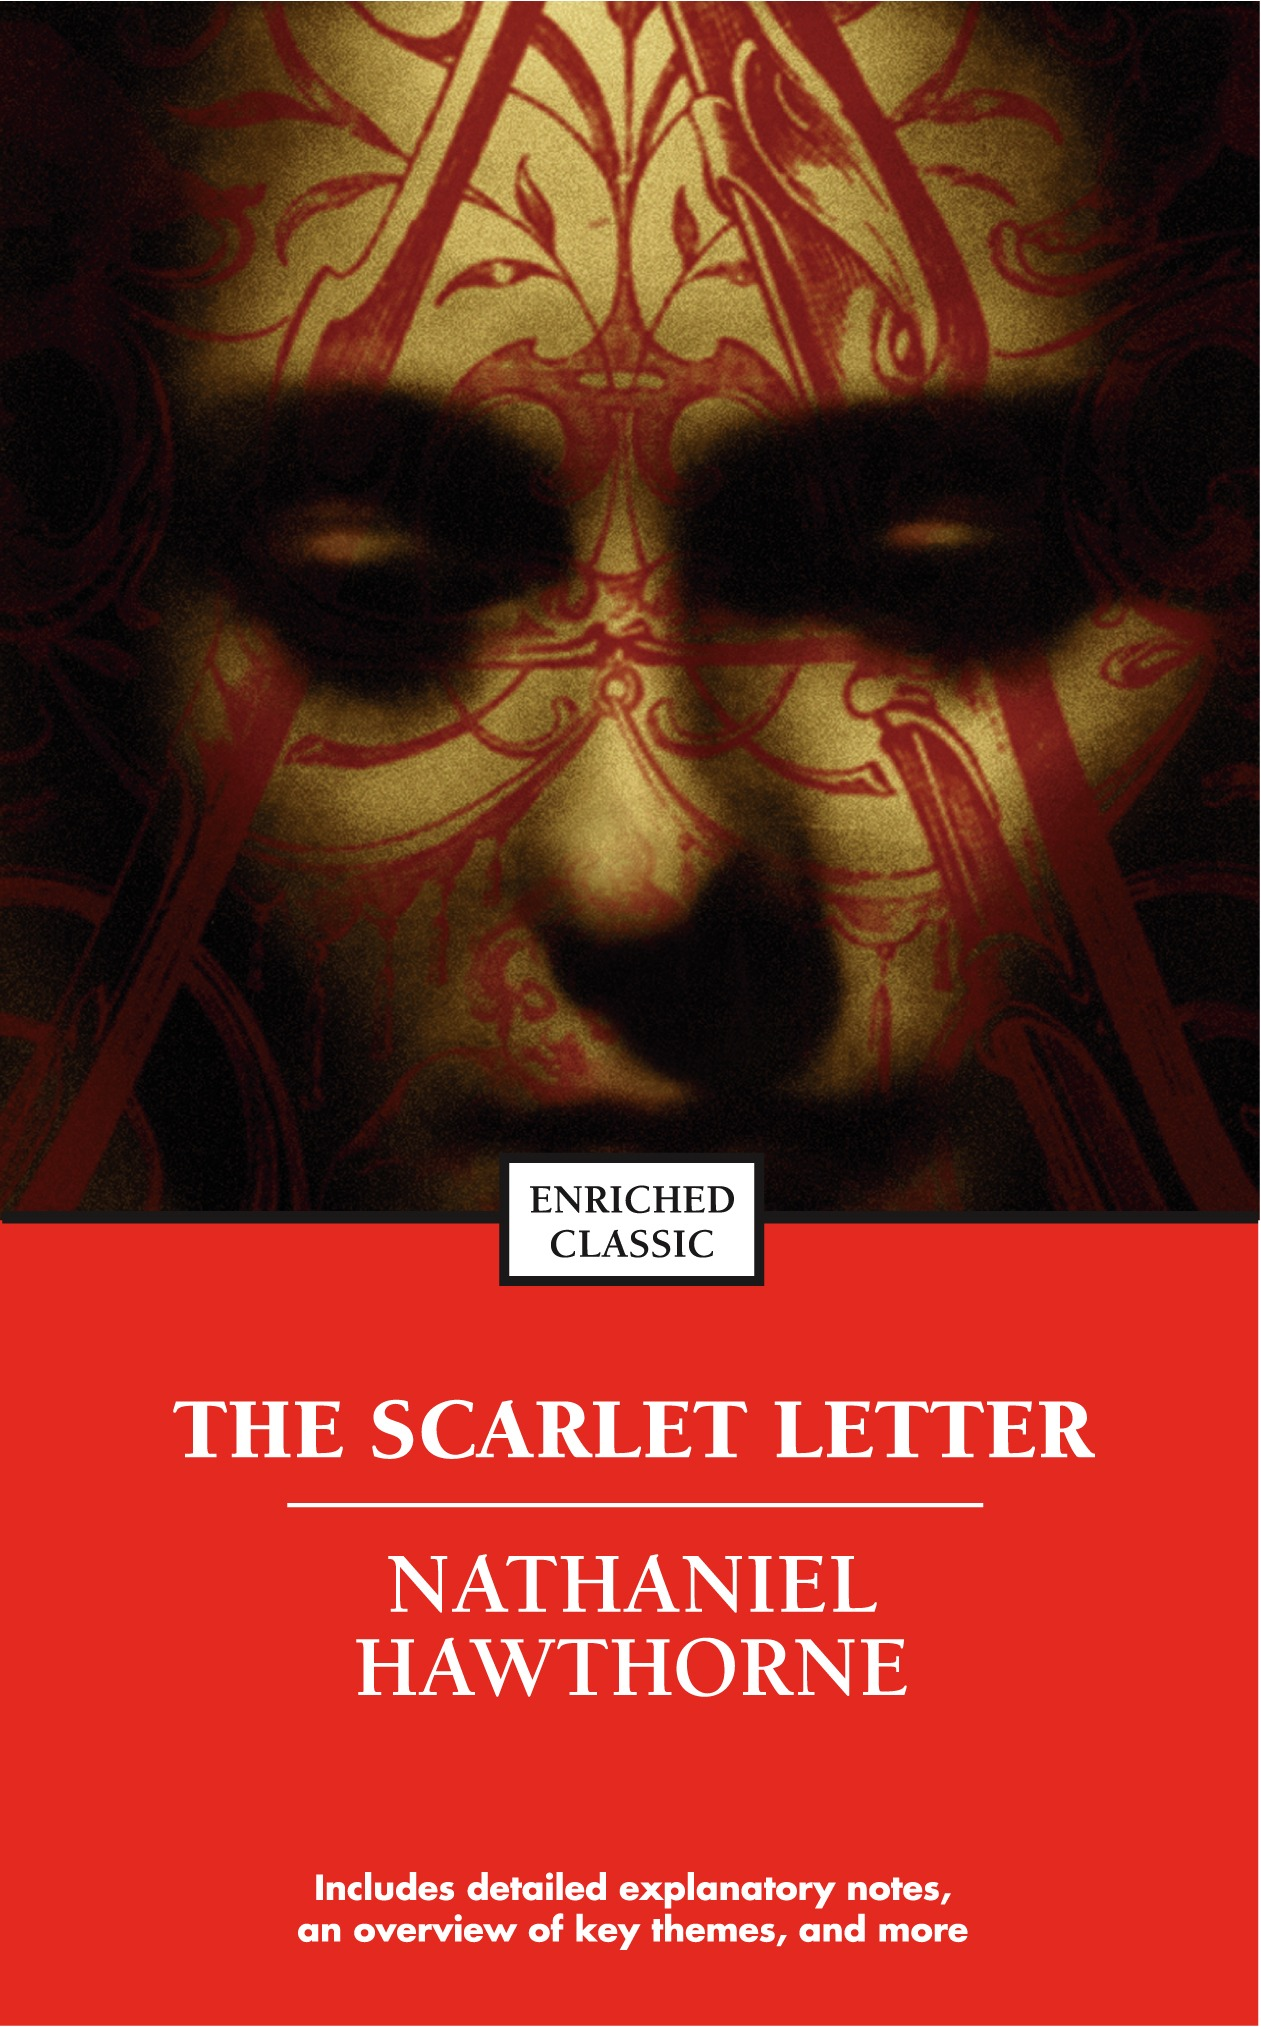 Caitlin reviews The Scarlet Letter